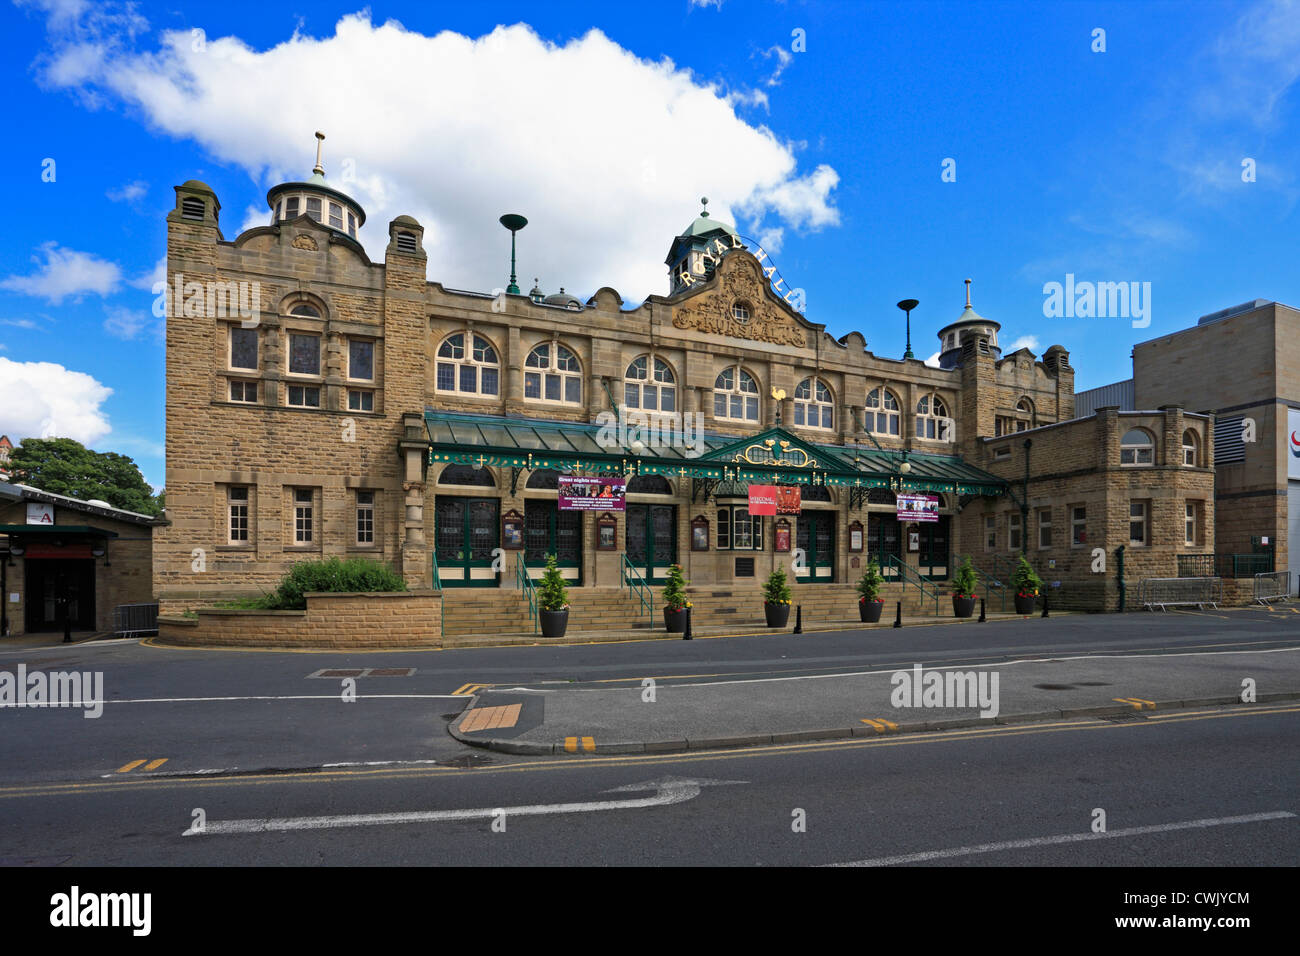 The Royal Hall cultural centre providing a venue for arts, entertainments, and events in Harrogate, North Yorkshire, - Stock Image